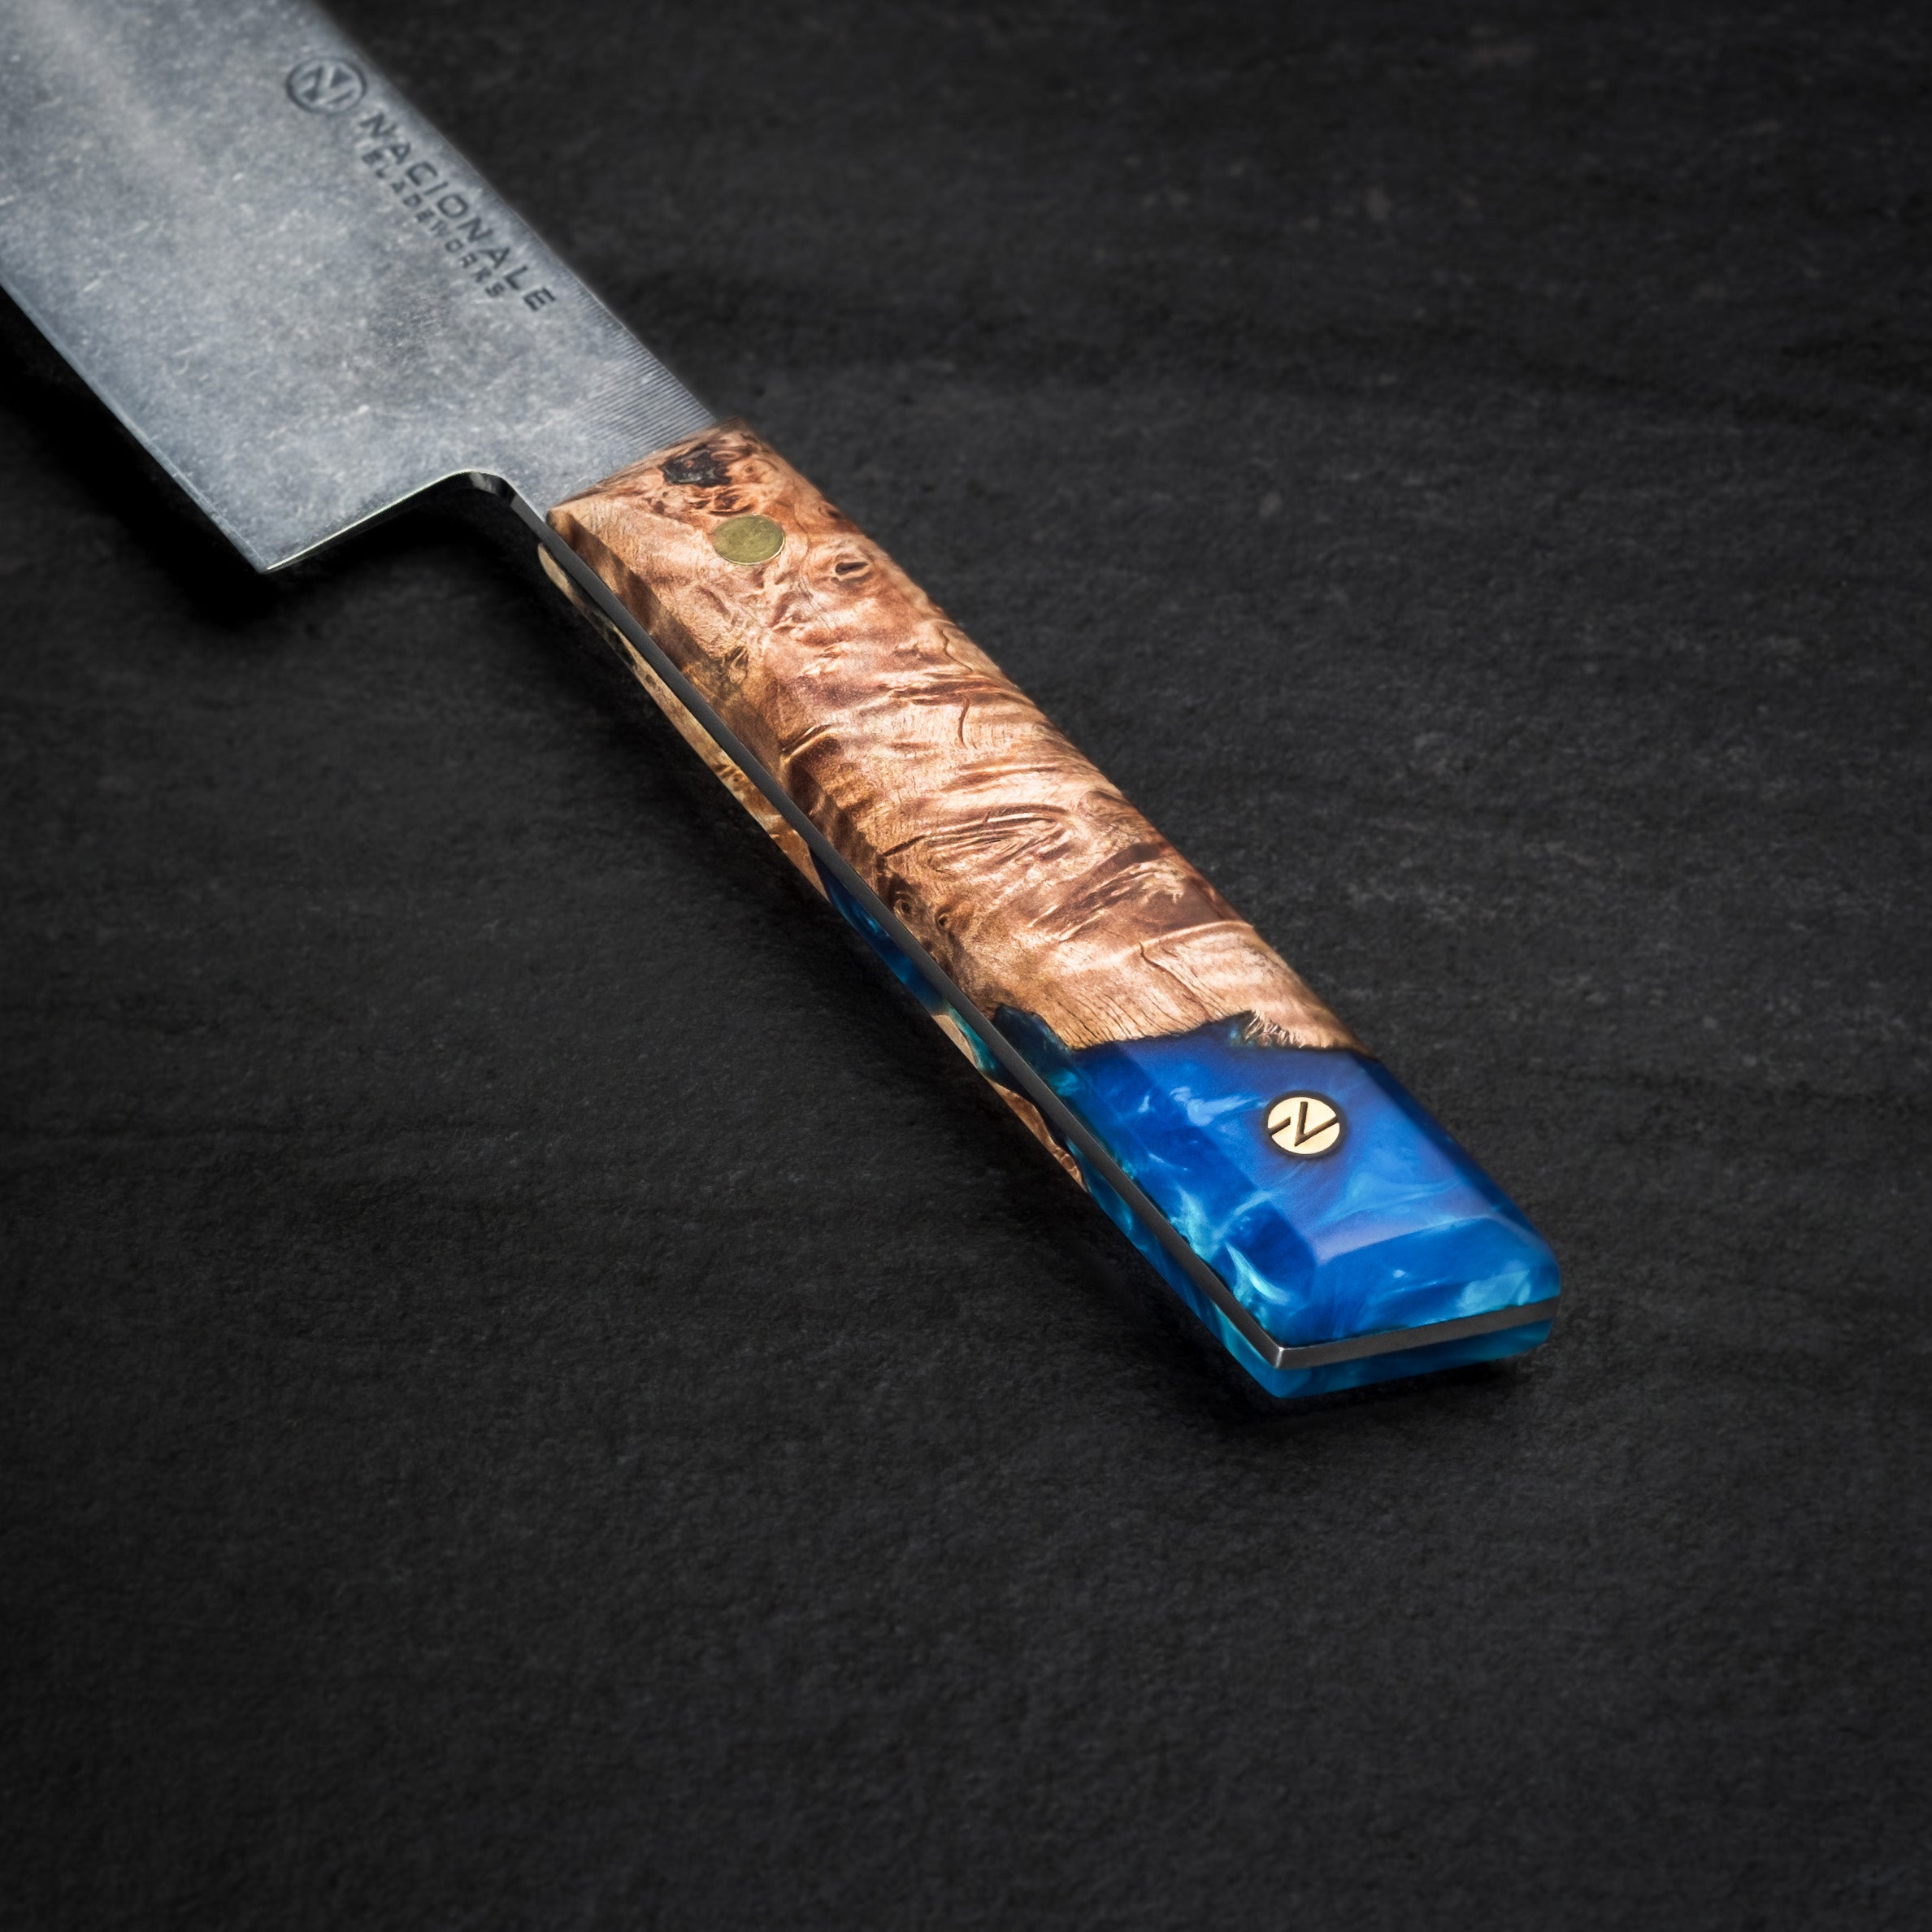 215mm Heavy Tall Gyuto. Stabilized Maple Resin Handle. Full Tang